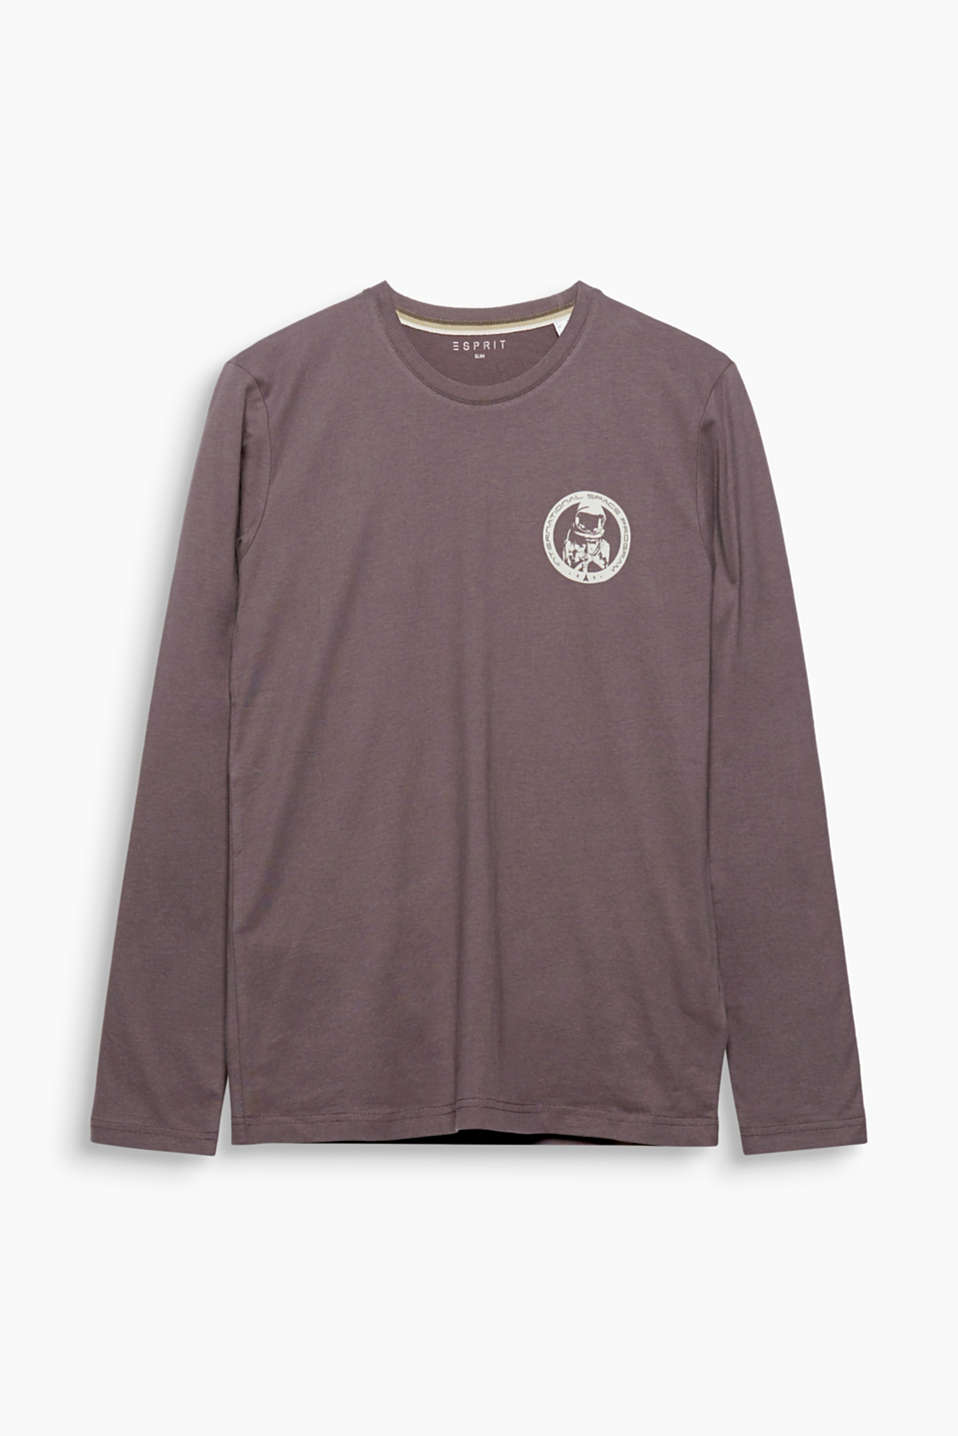 This soft long sleeve T-shirt made of pure cotton features a cool space motif.